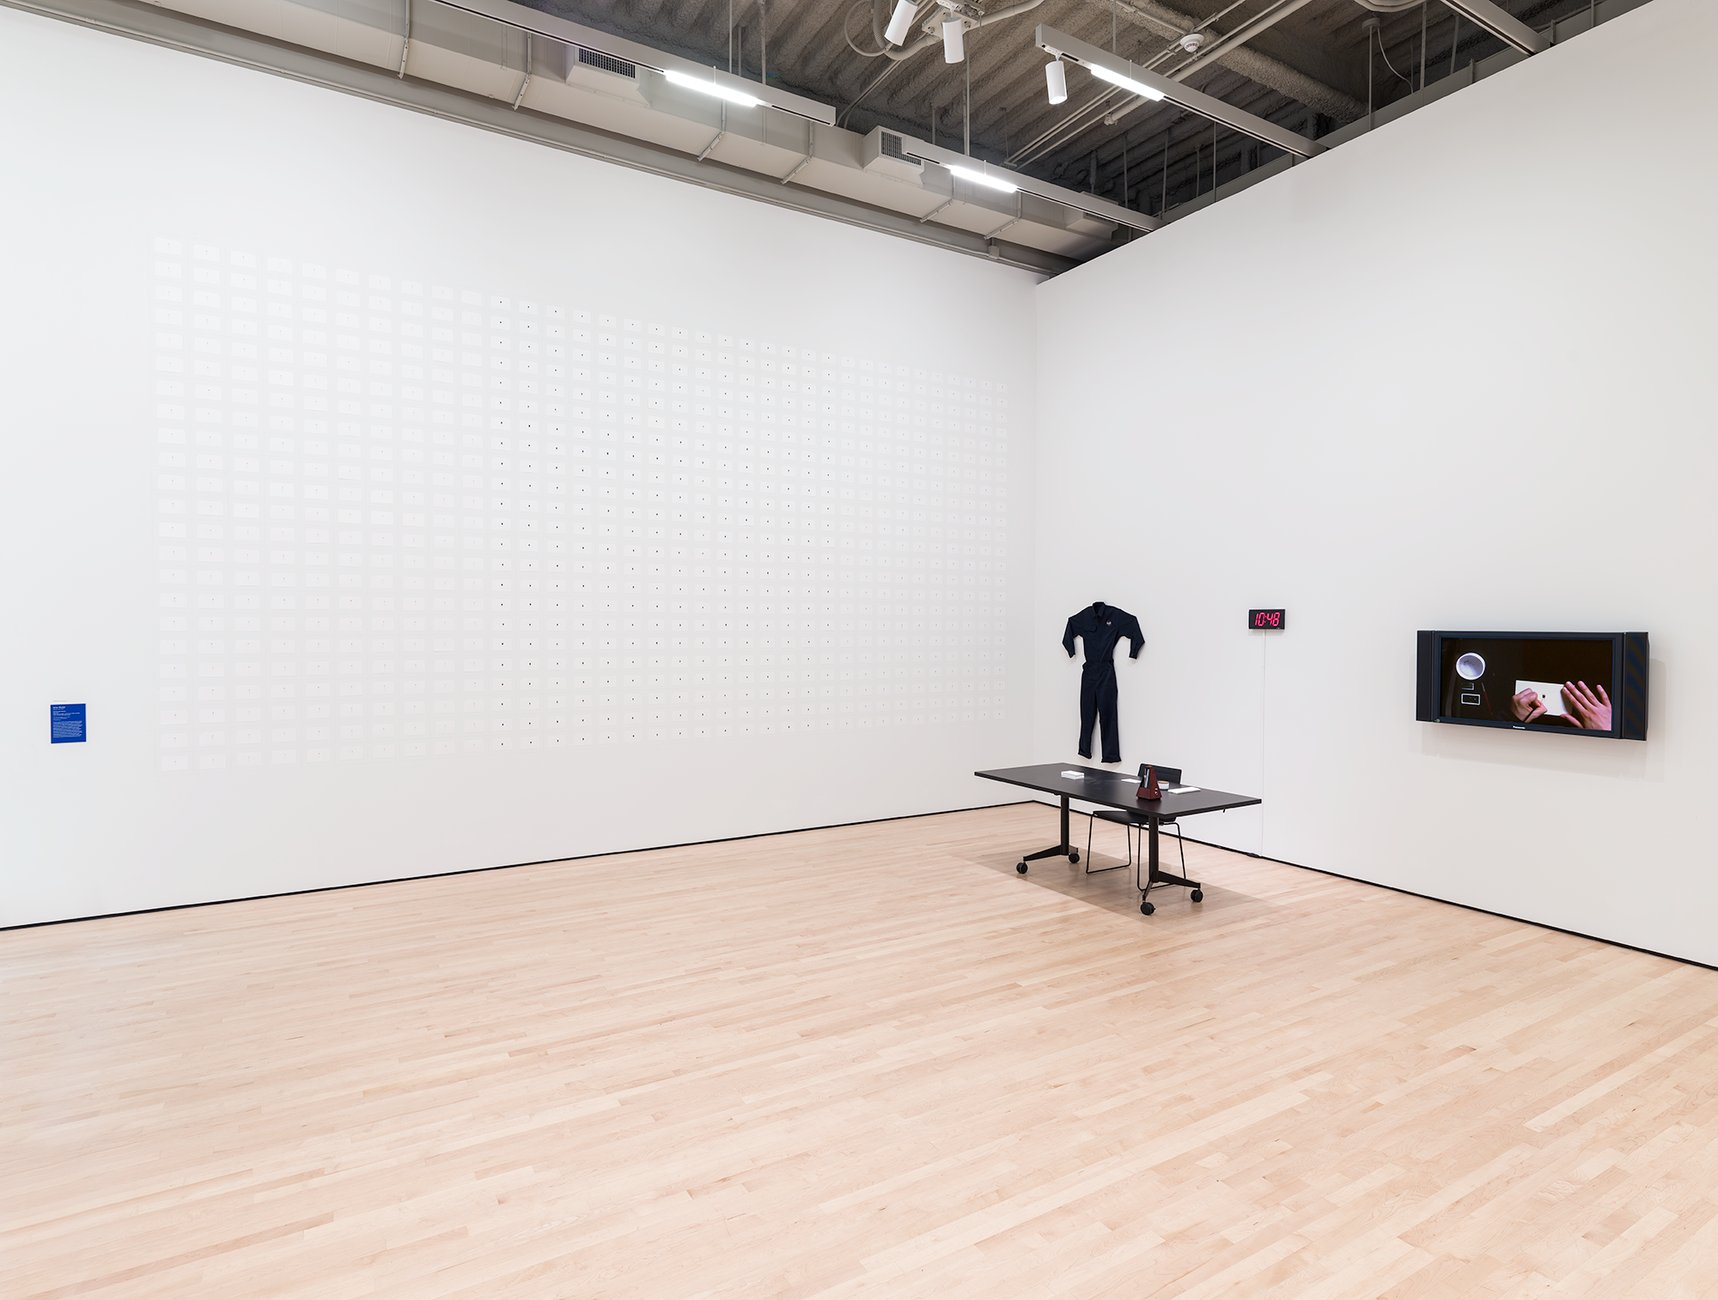 A gallery shows a grid of small white drawings, a jumpsuit, and a screen hanging on a wall before a desk, Munoz, Soundtrakcs